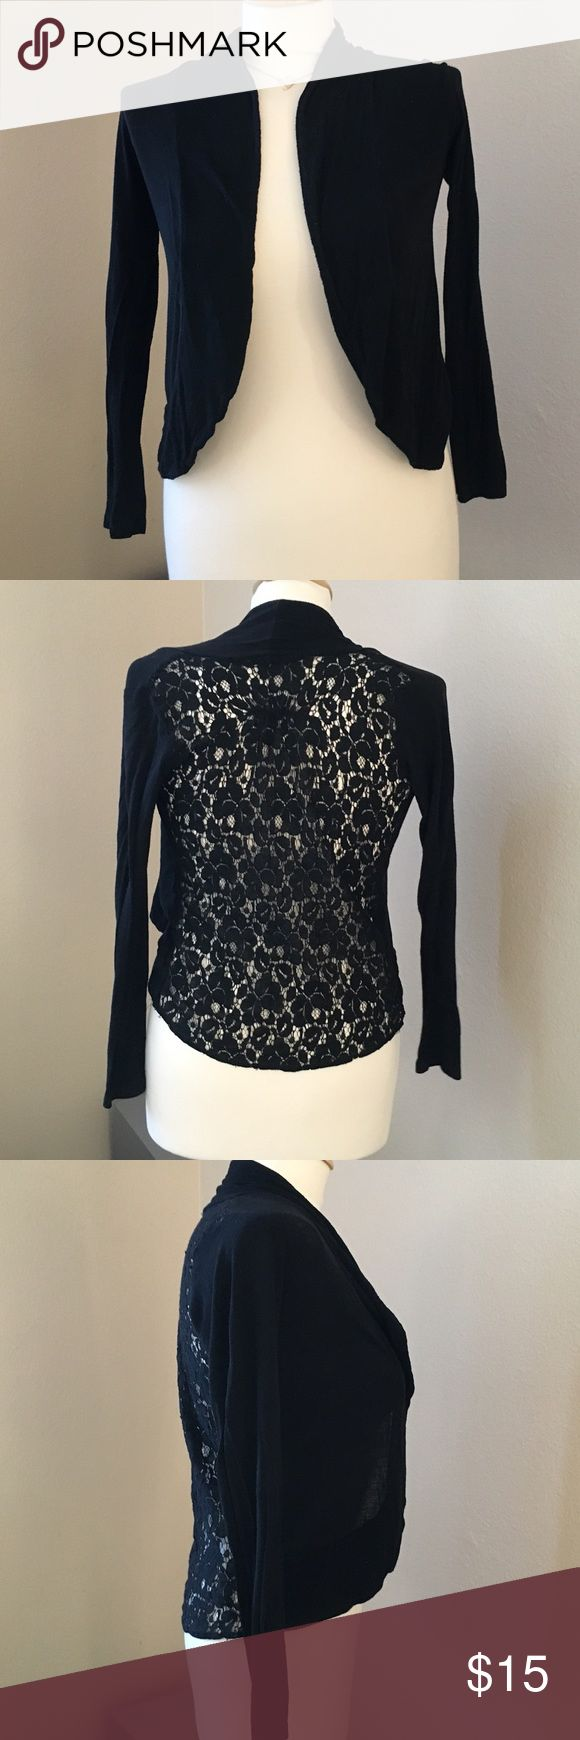 Shirt design with laces - Black Lace Back Cardigan